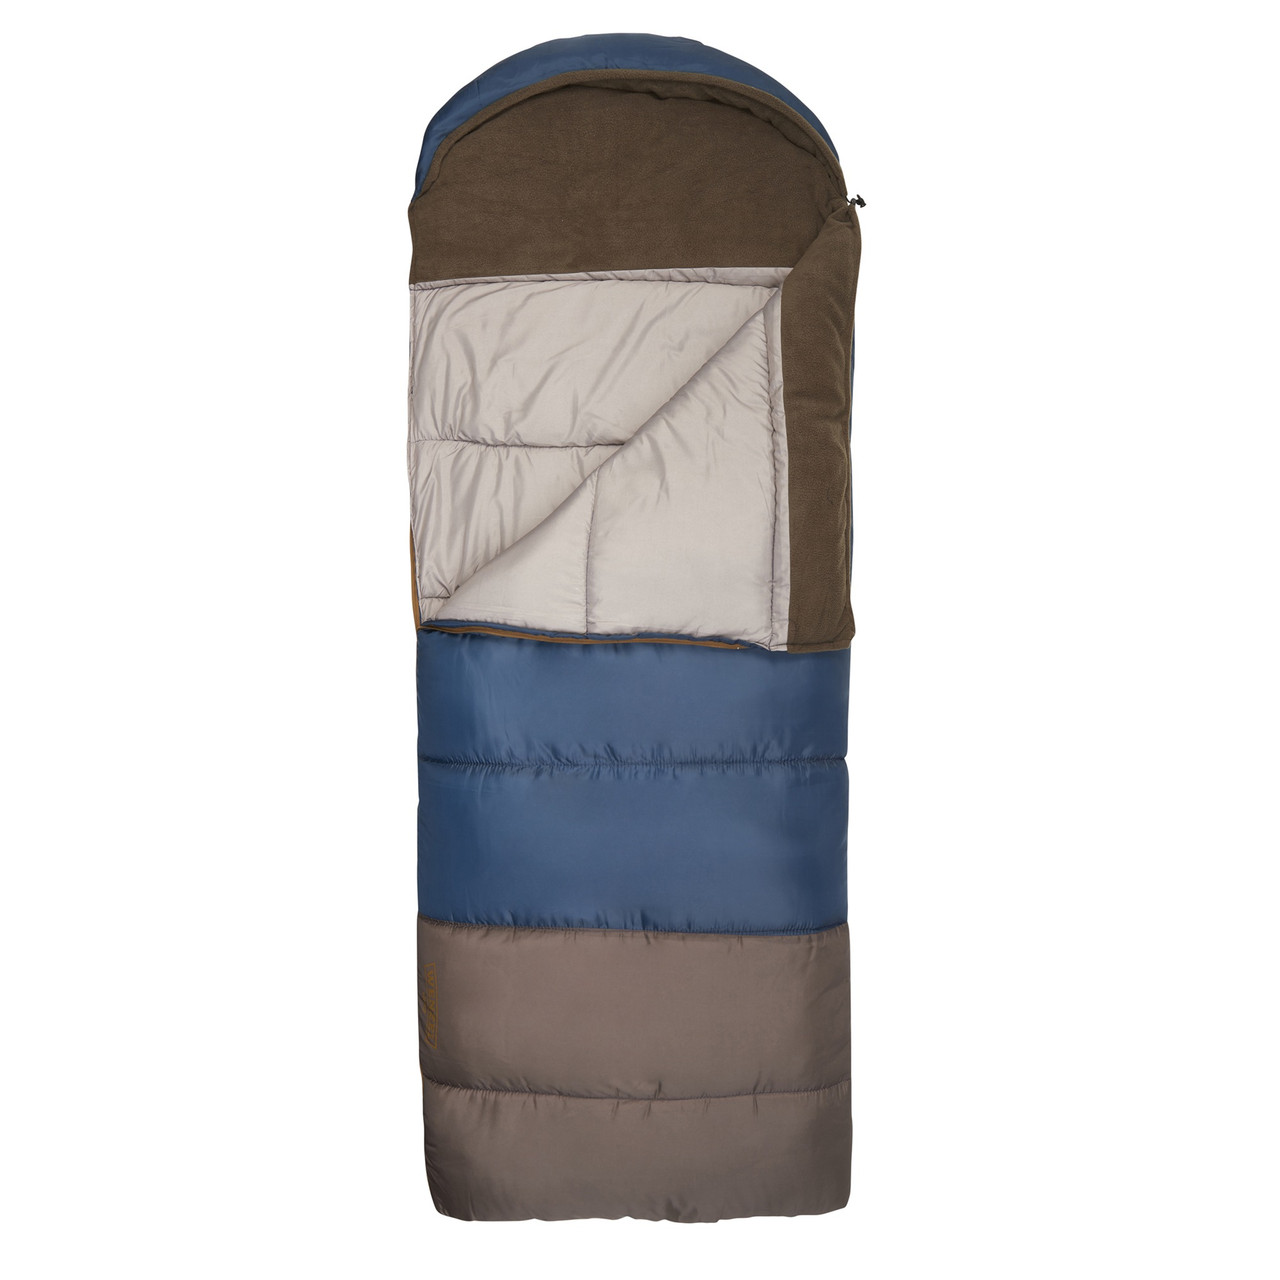 Wenzel Monterey Sleeping Bag, blue, shown partially unzipped